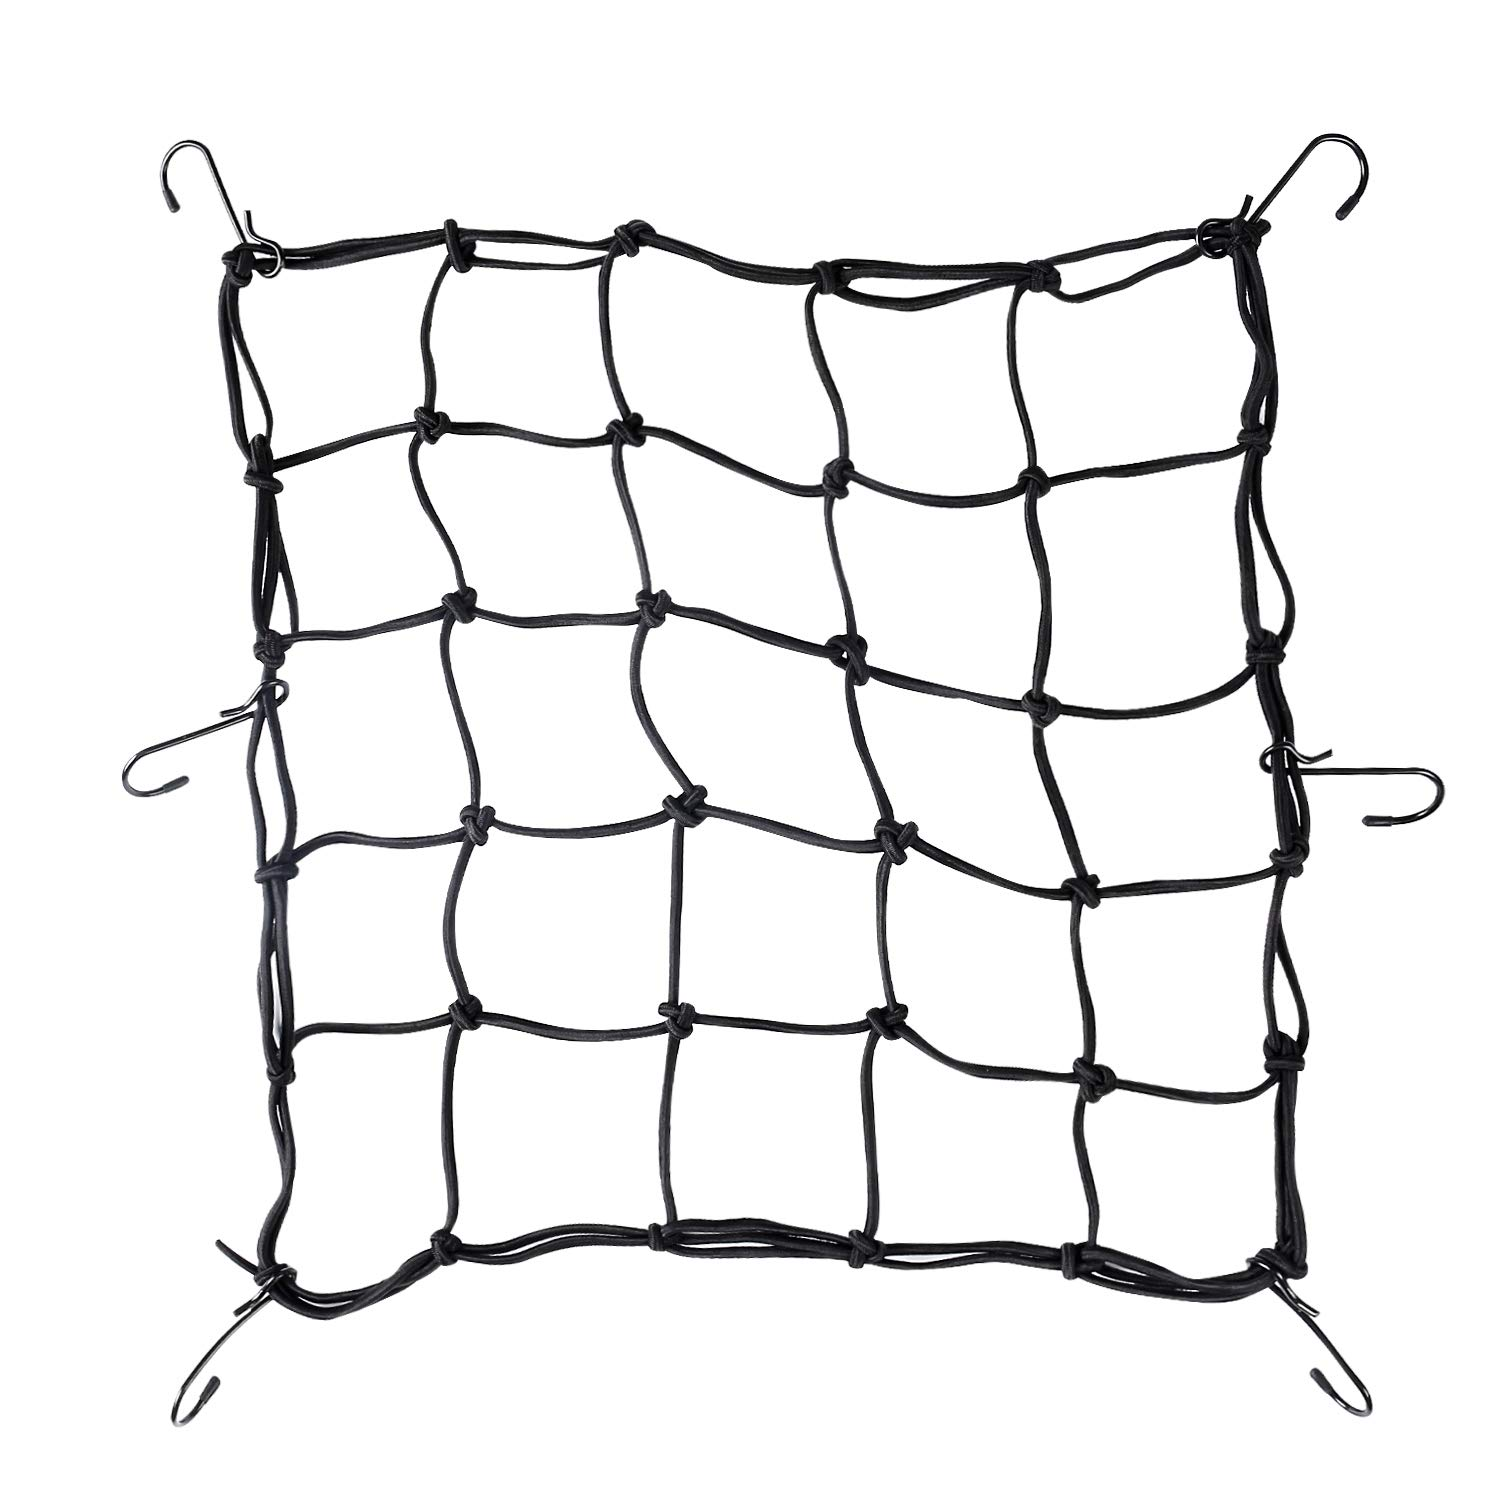 SunFounder Cargo Net for Motorcycle and ATV